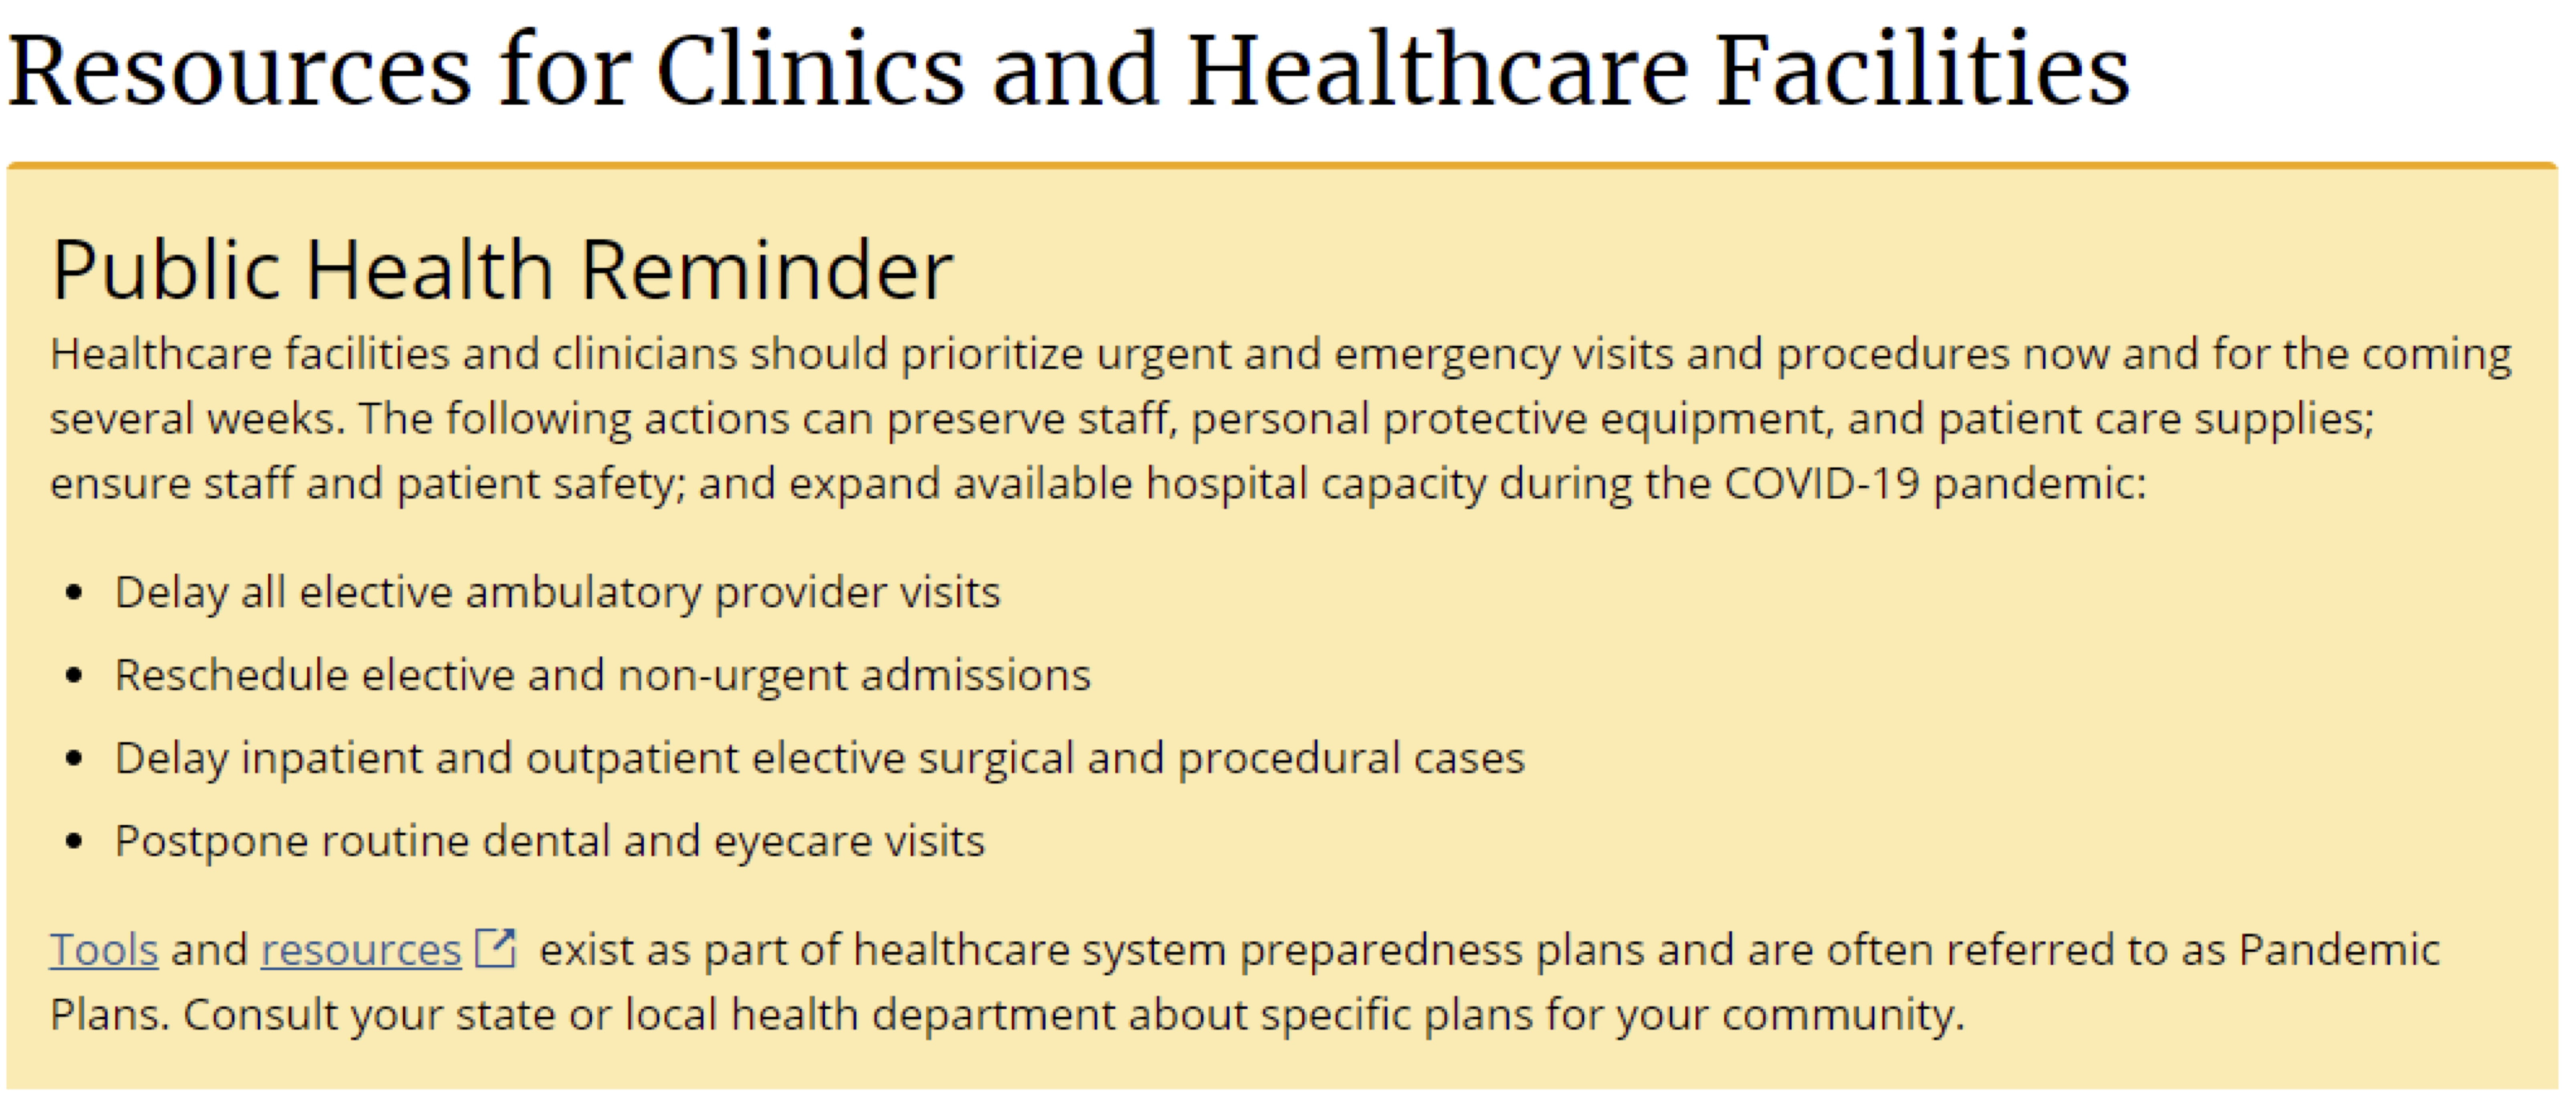 CDC Resources for Clinics and Healthcare Facilities